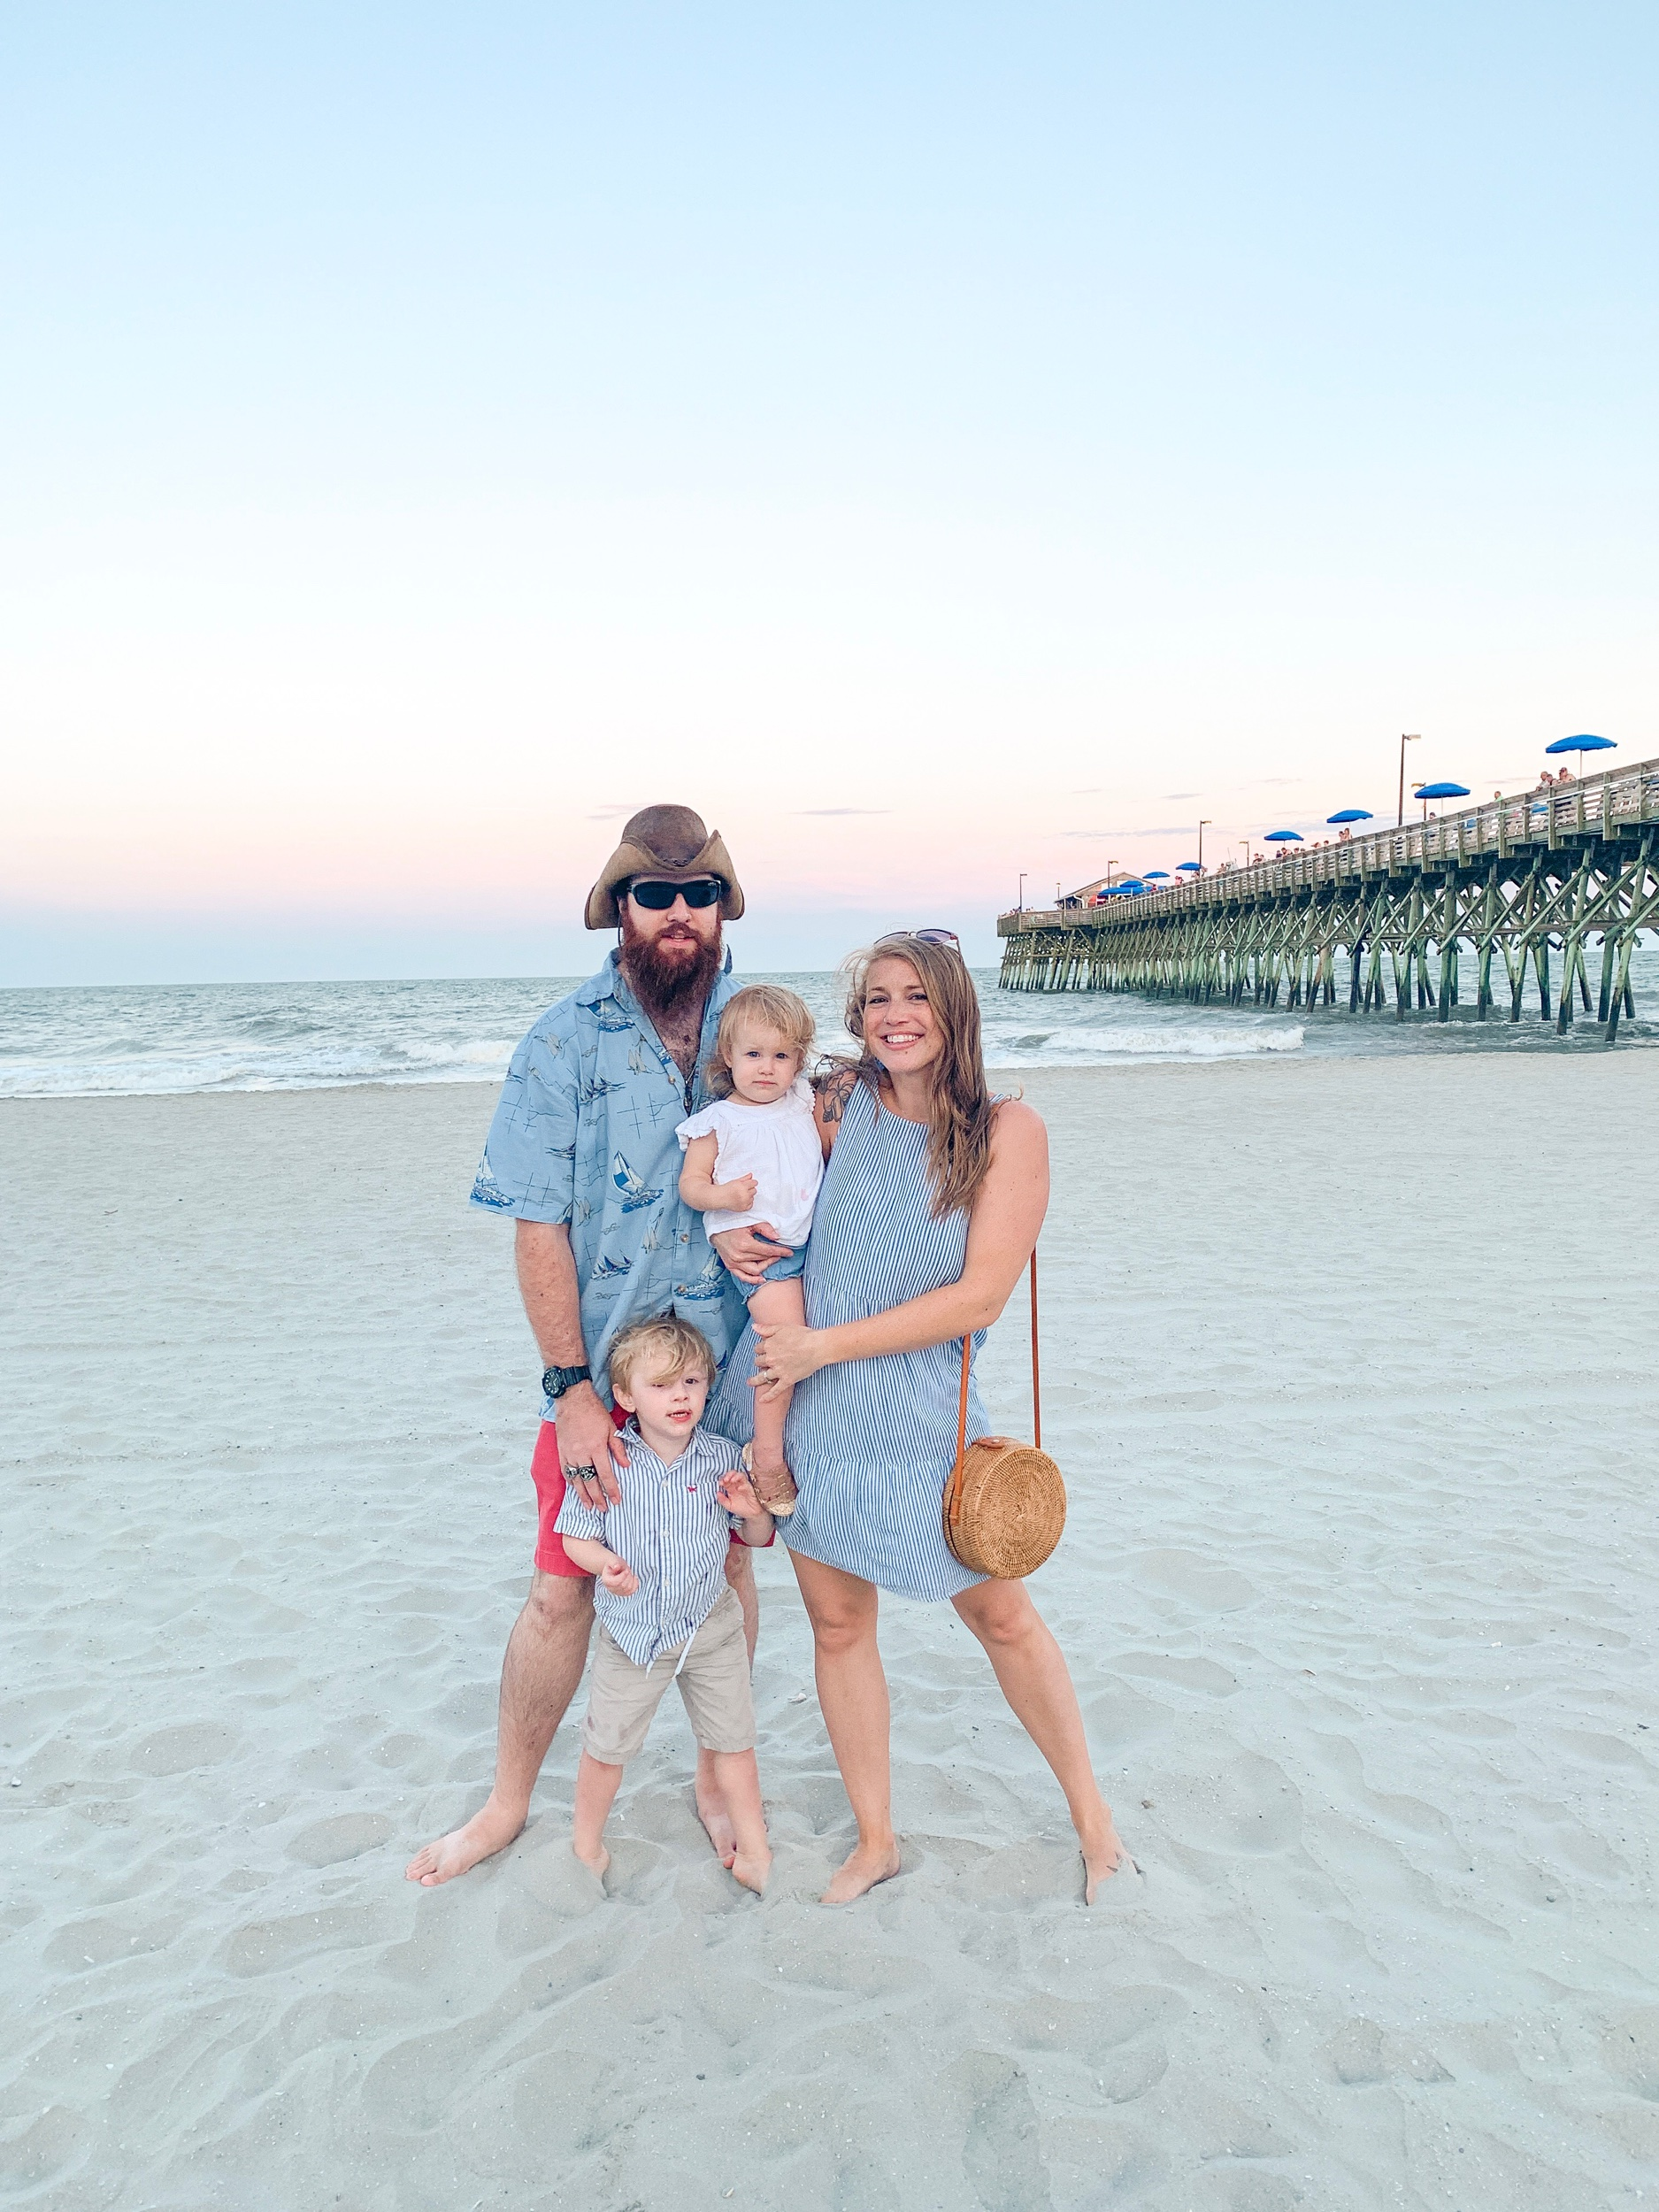 If you're looking for a good family-friendly beach in the south, Garden City, SC was a blast!!